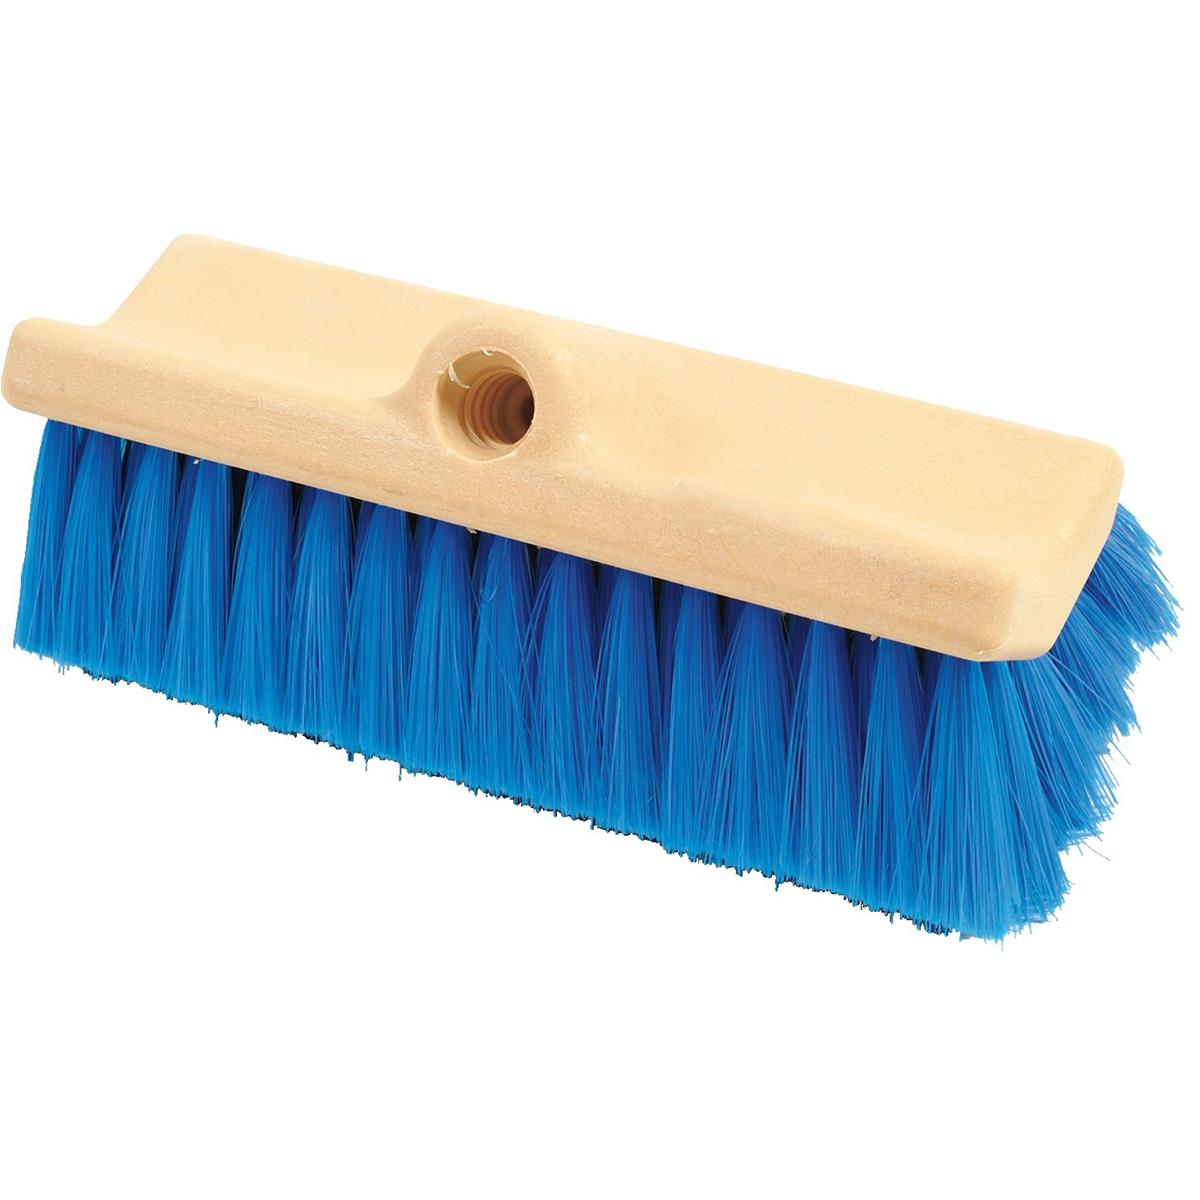 Magnolia Brush Vehicle Wash Brush